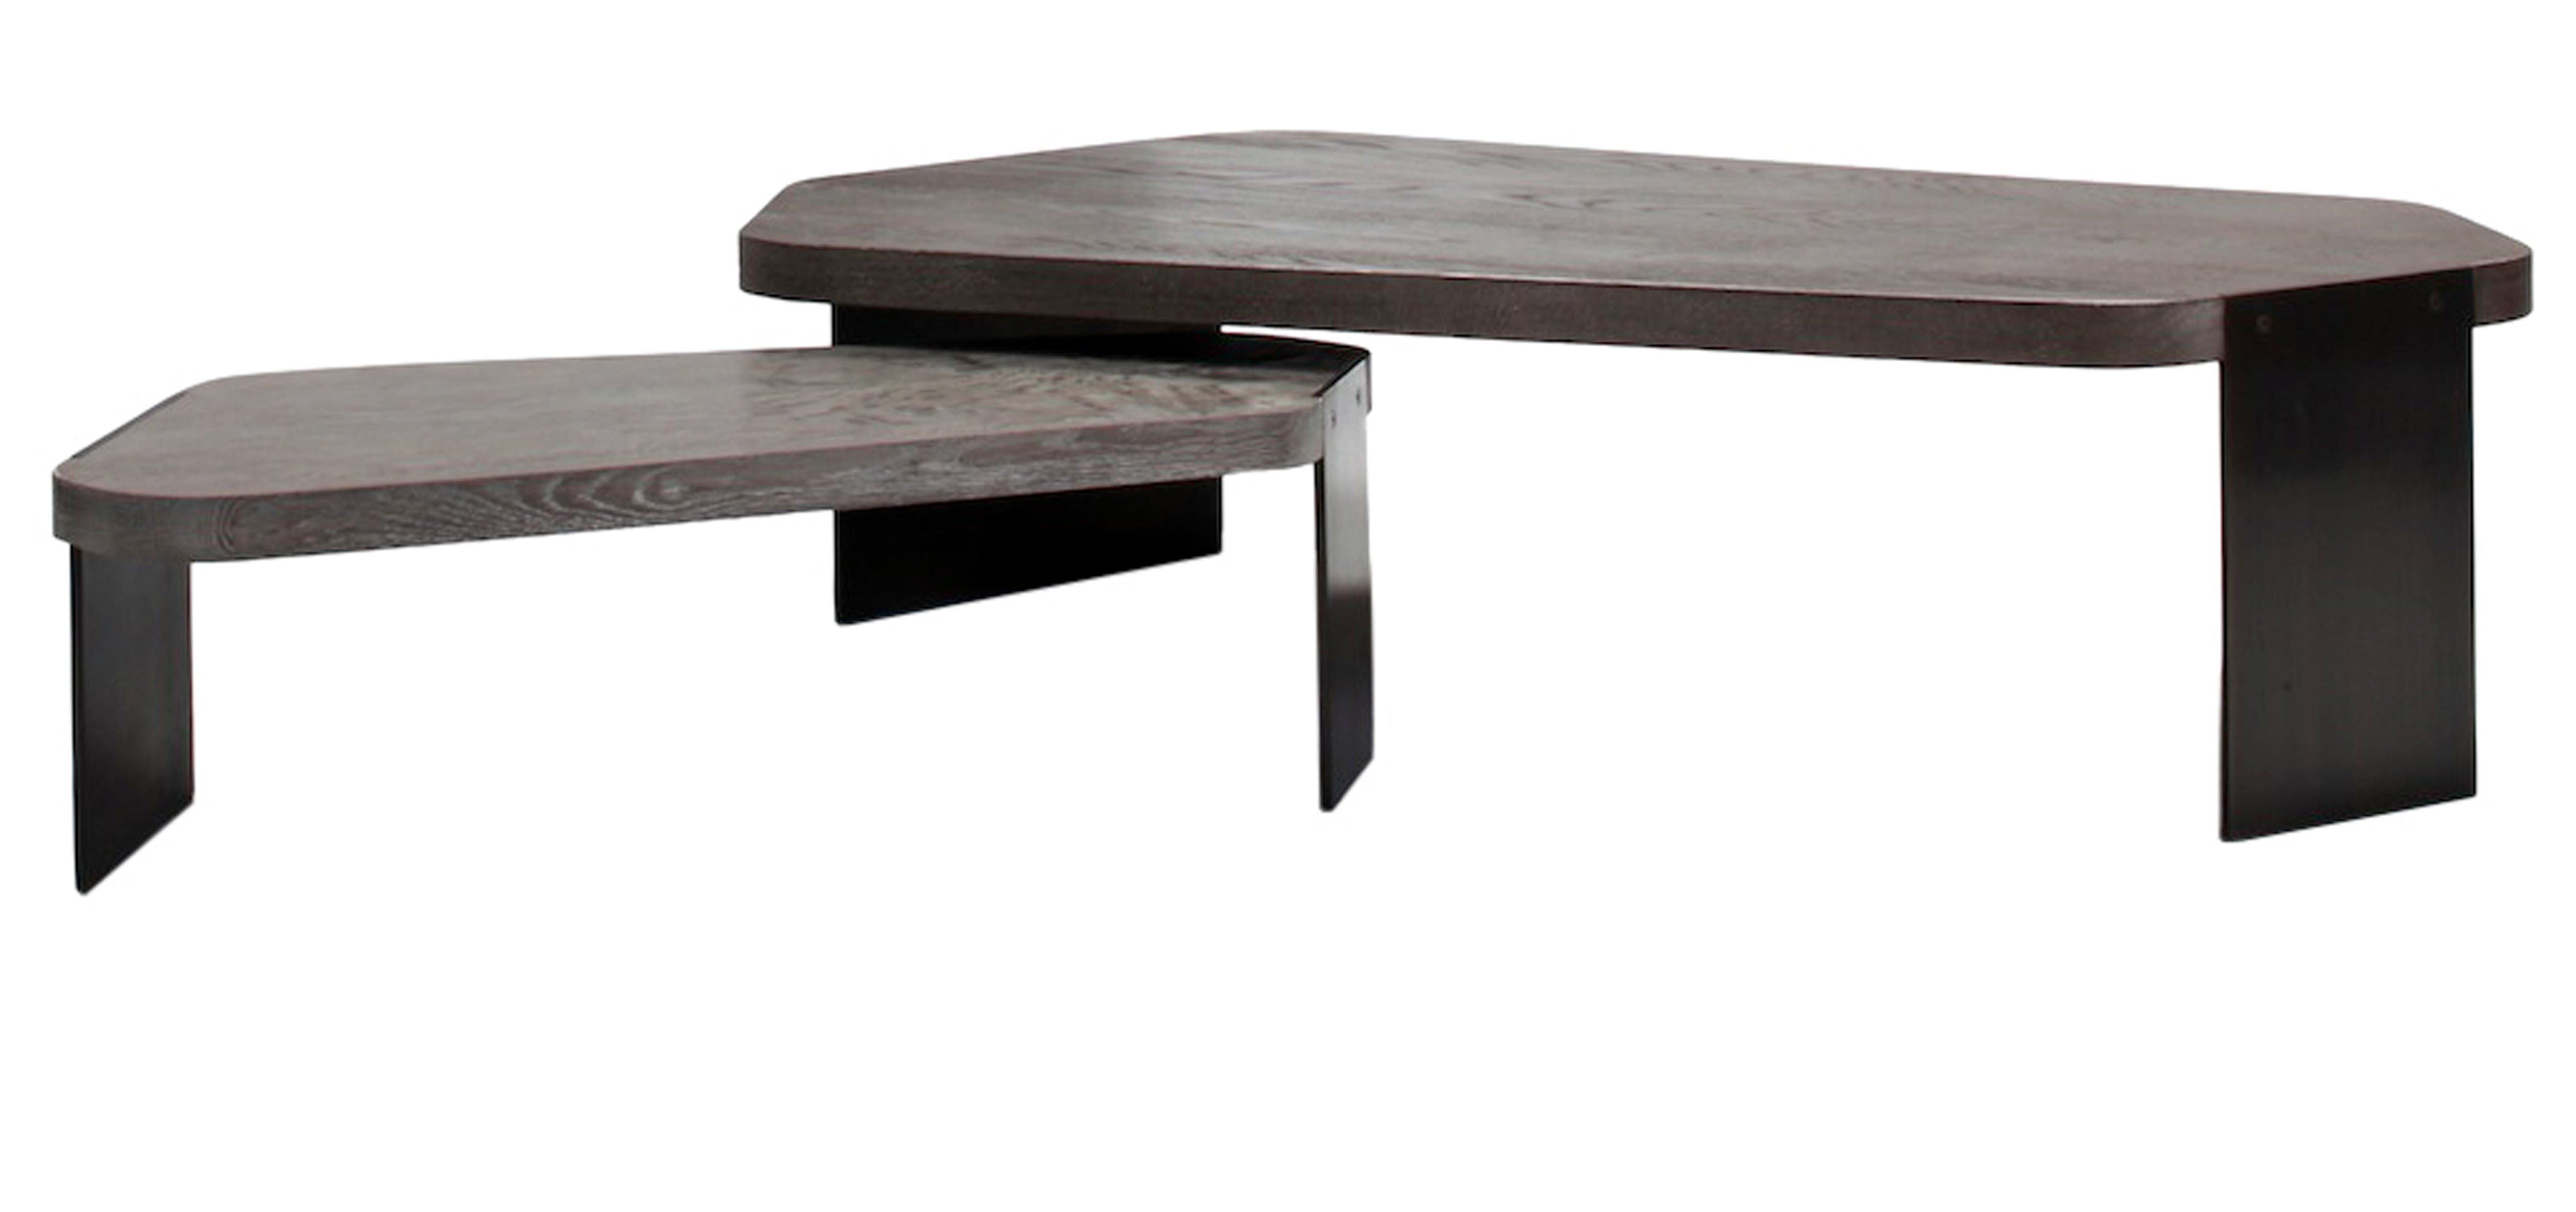 Buy Tambobamba Table By Jiun Ho From Dennis Miller Associates By New York  Design Center   Made To Order Designer Furniture From Dering Hallu0027s  Collection Of ...